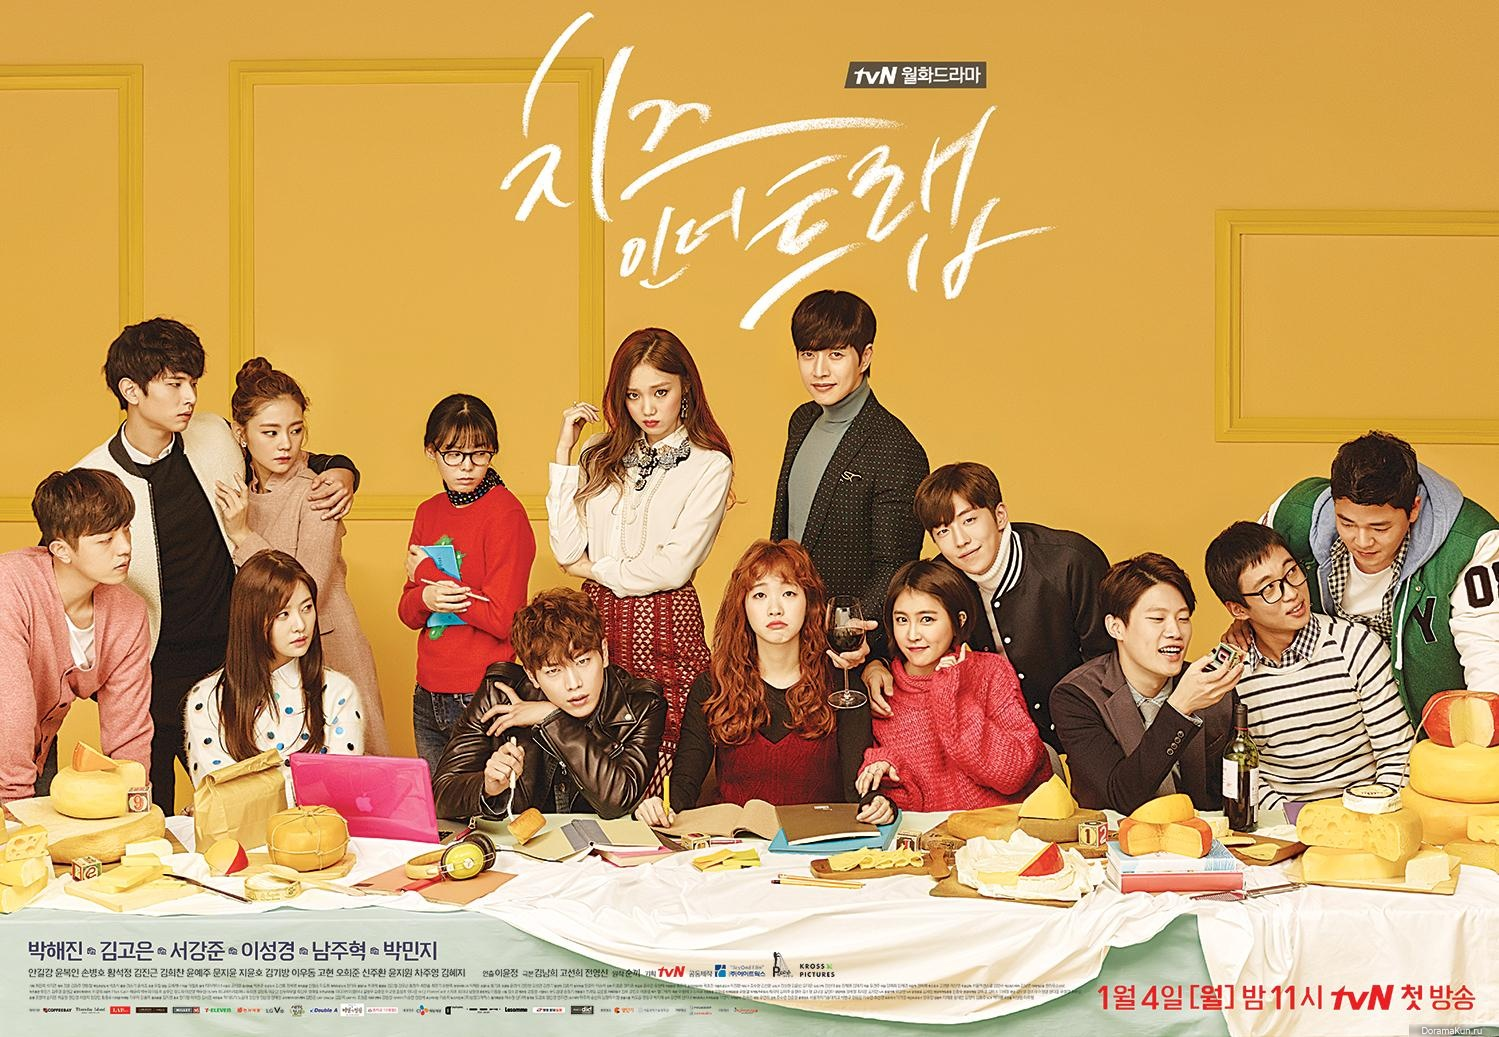 Сыр в мышеловке/Cheese in the trap (2016) - Страница 2 Cheese-in-the-Trap-Poster4-1499